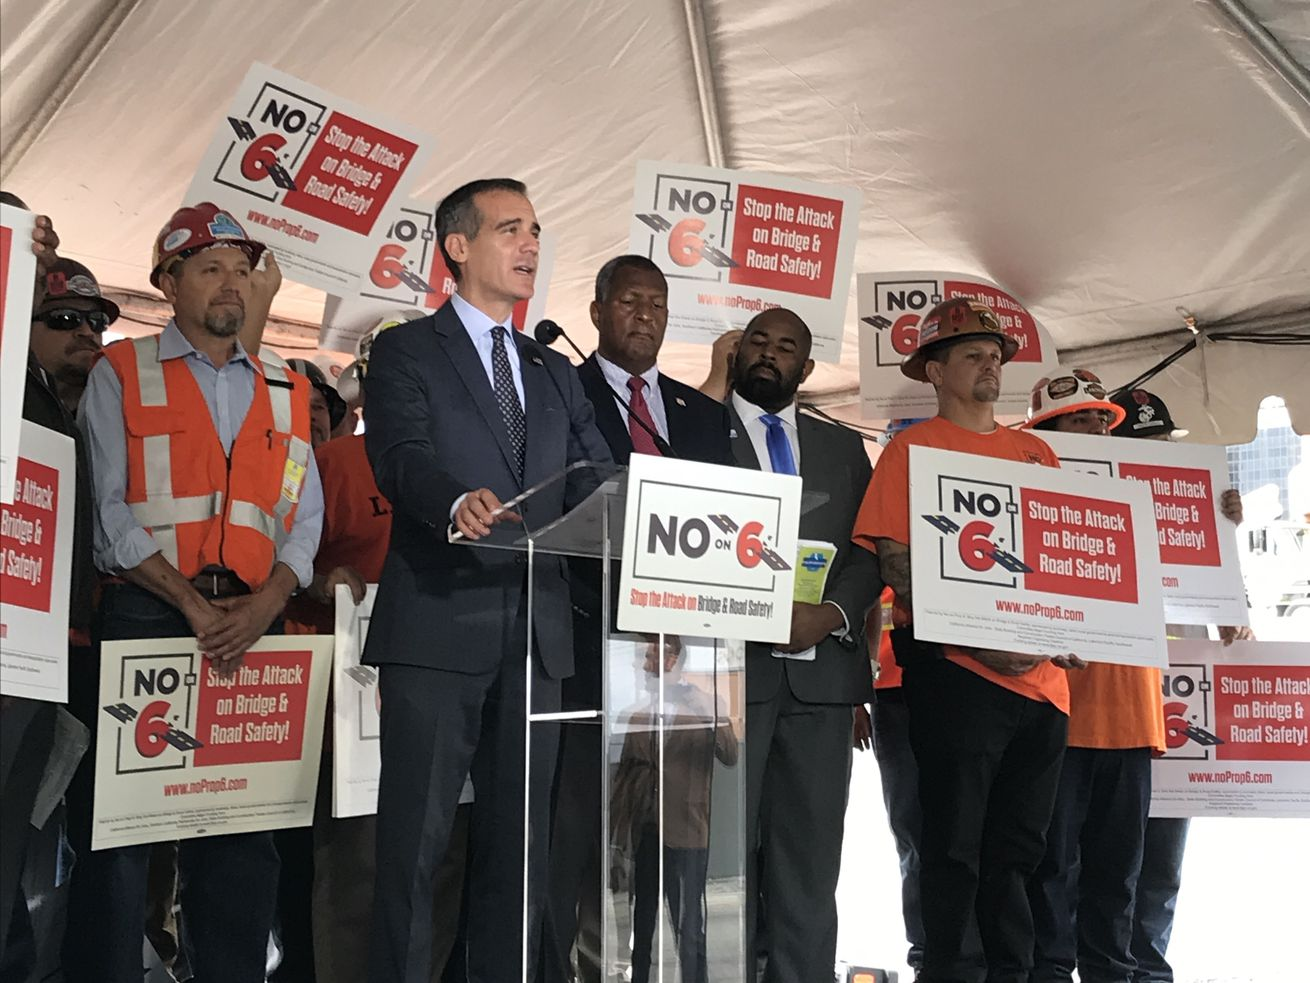 Garcetti speaking against Proposition 6 at a press event Wednesday.